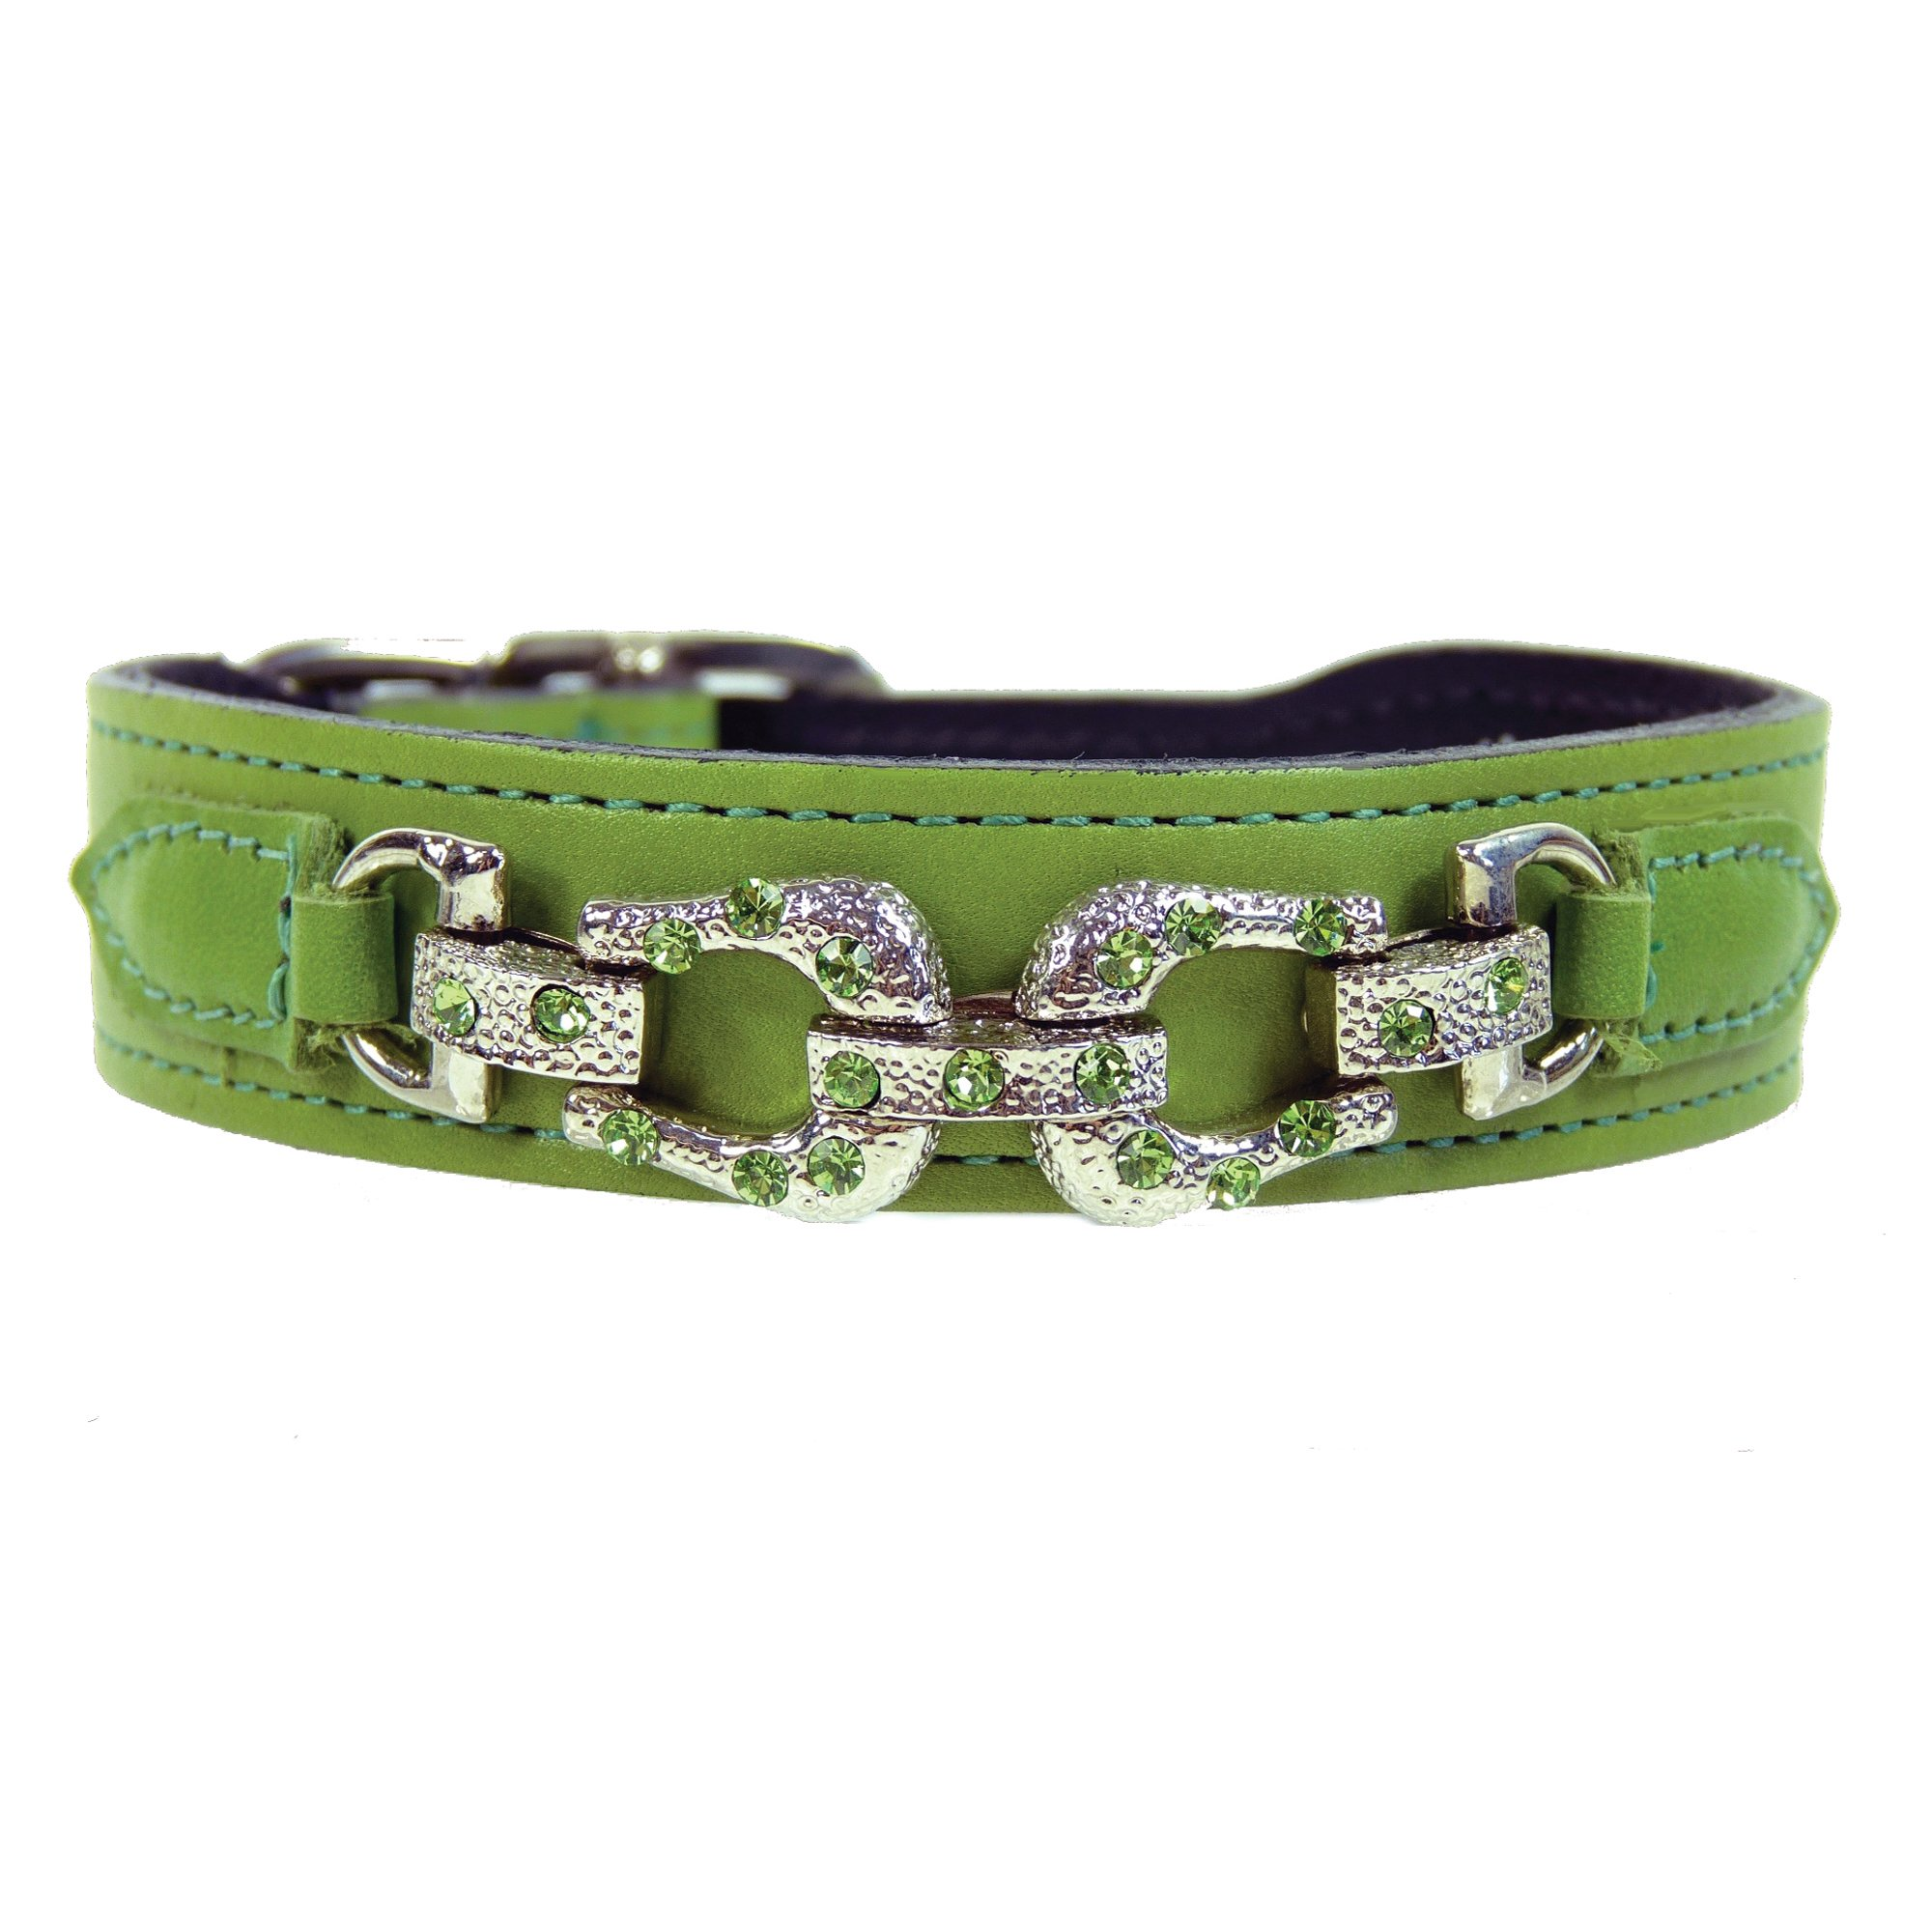 Hartman & Rose Pret a Porter Dog Collar, Large, Lime Green by Hartman & Rose